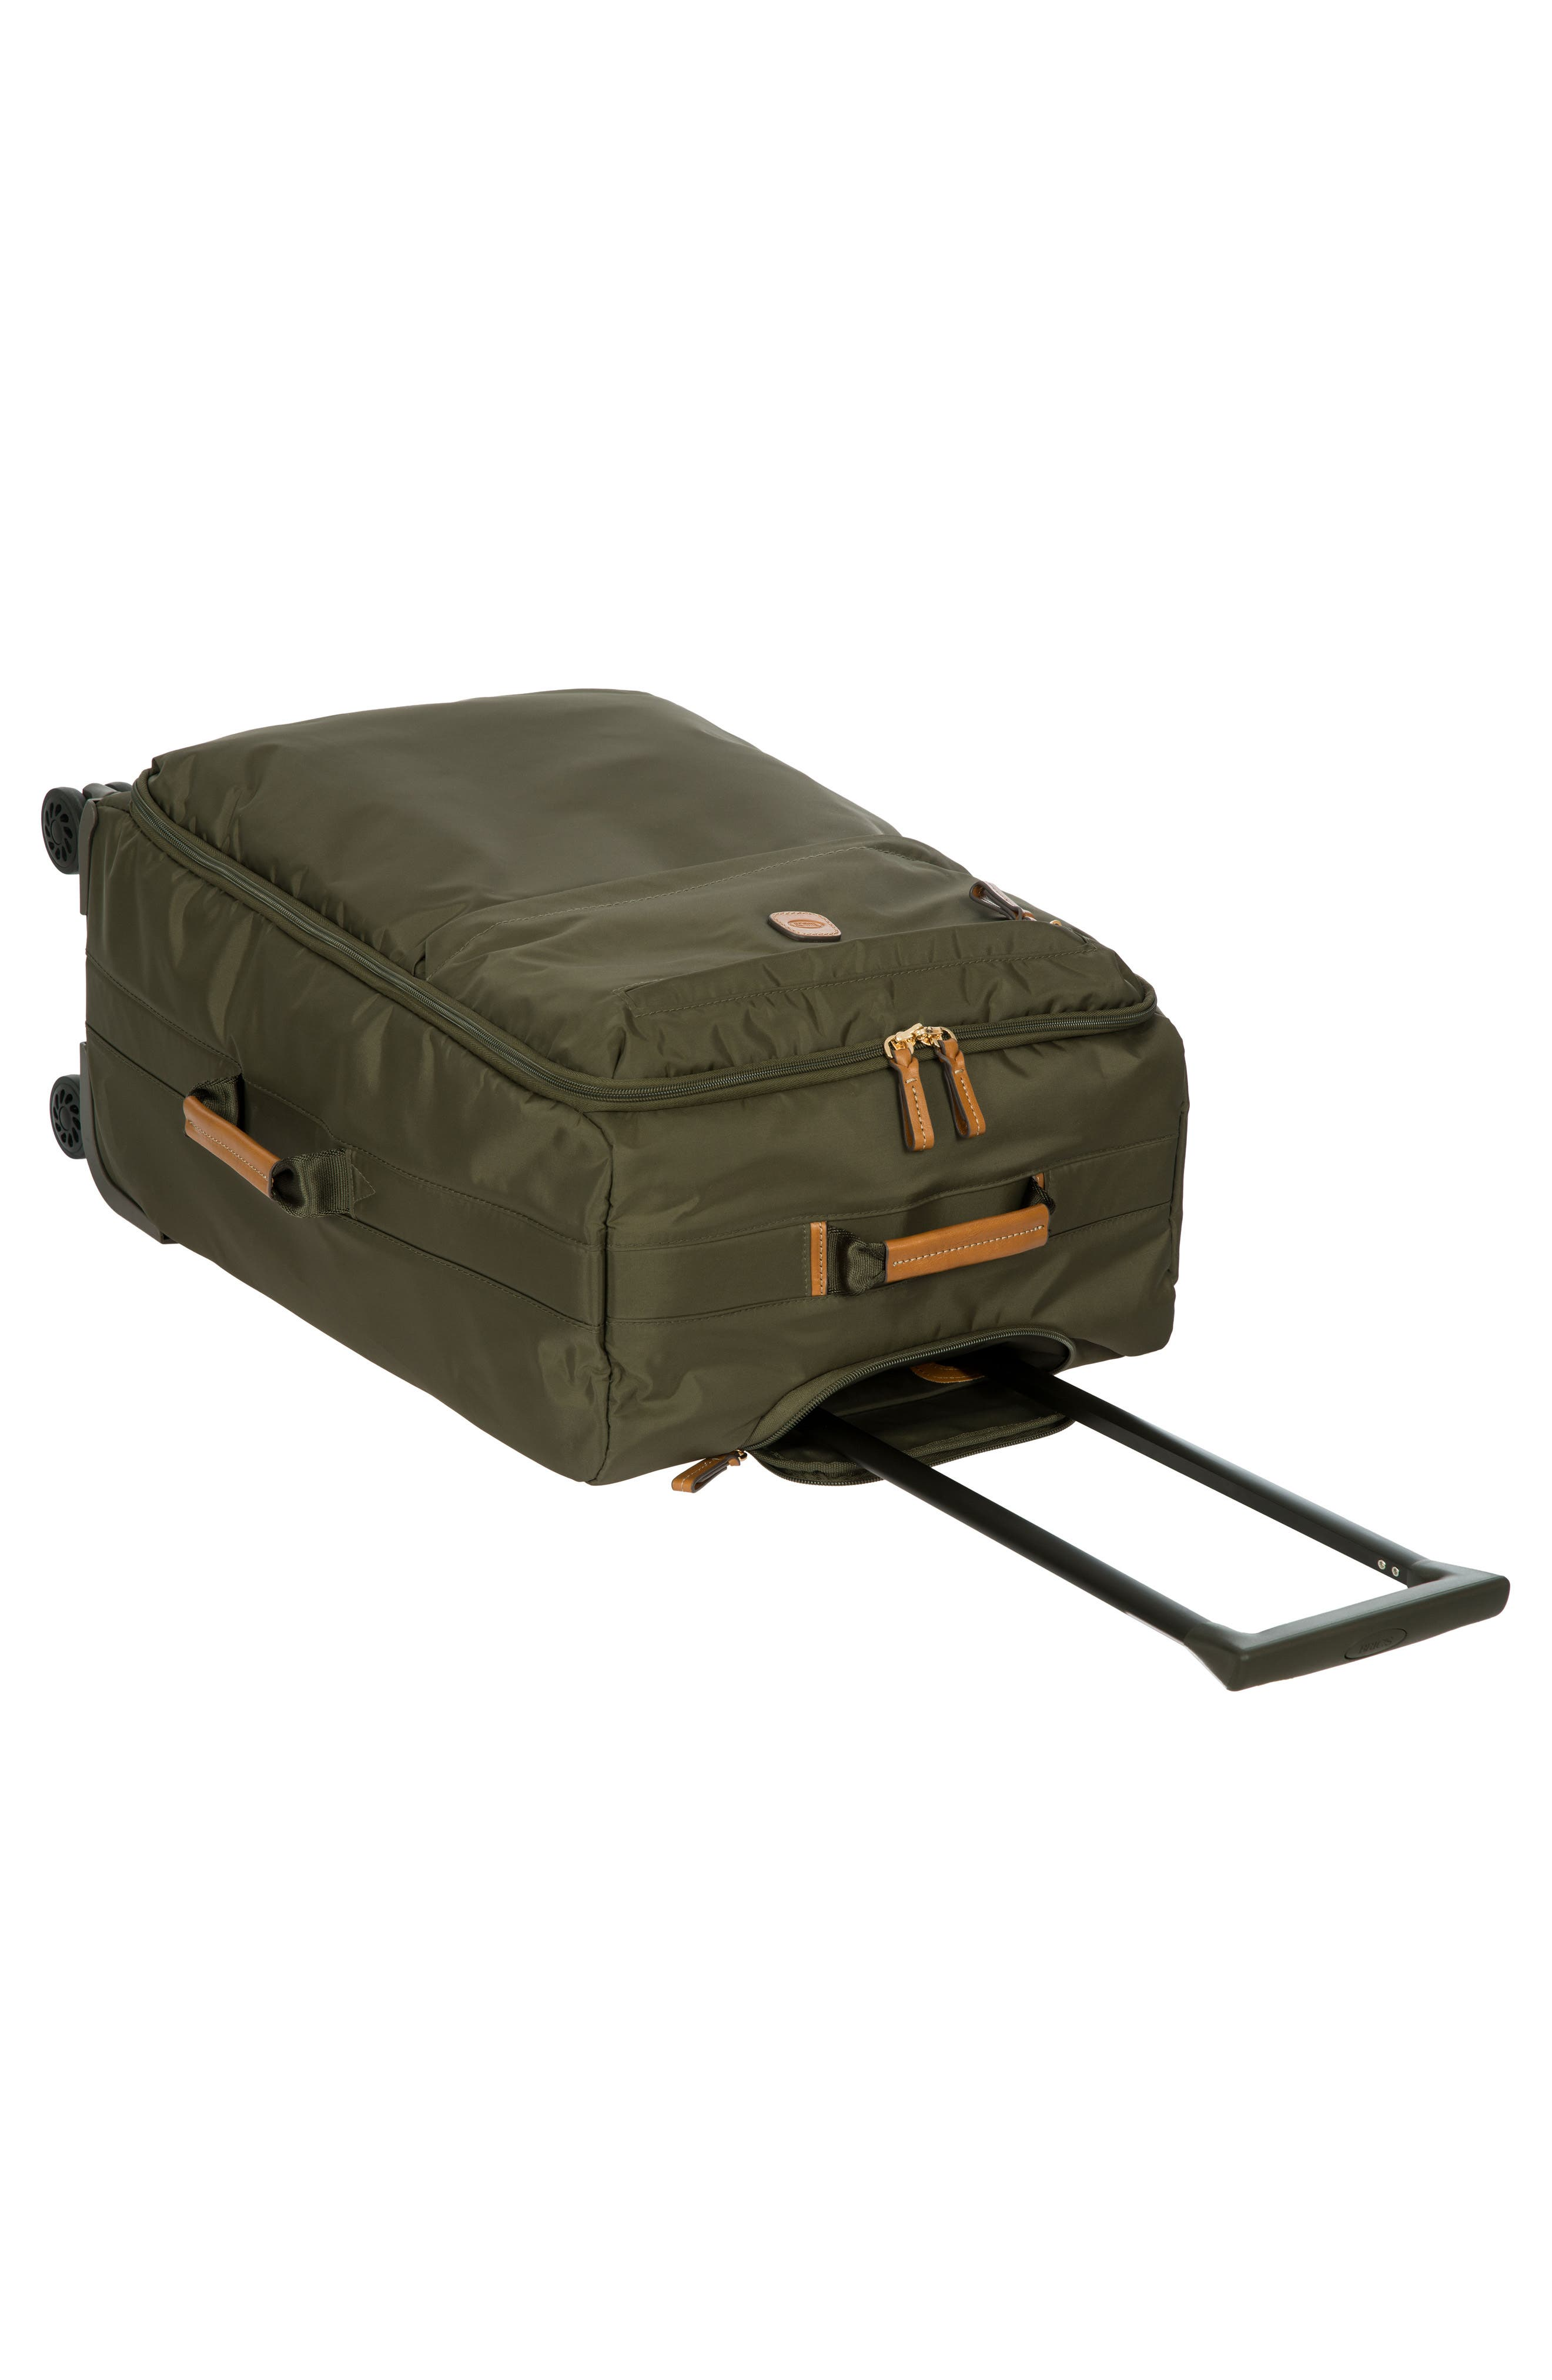 X-Bag 25-Inch Spinner Suitcase,                             Alternate thumbnail 6, color,                             OLIVE